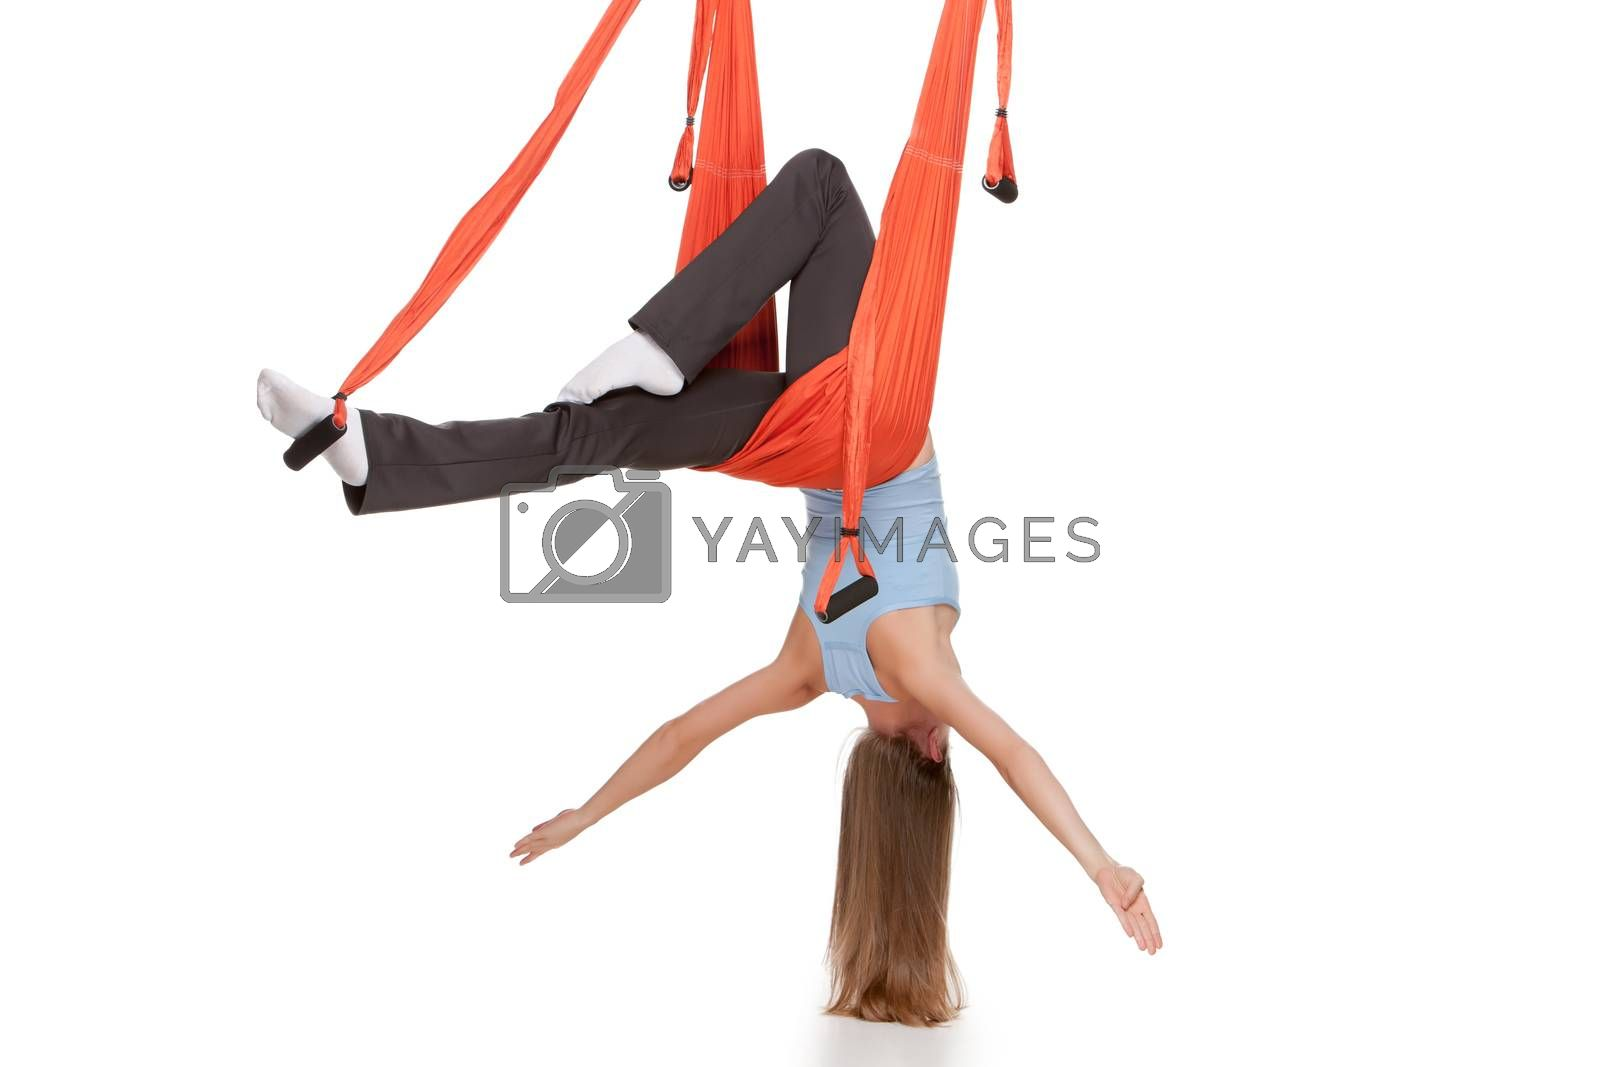 Young woman upside down doing anti-gravity aerial yoga in hammock on a seamless white background.